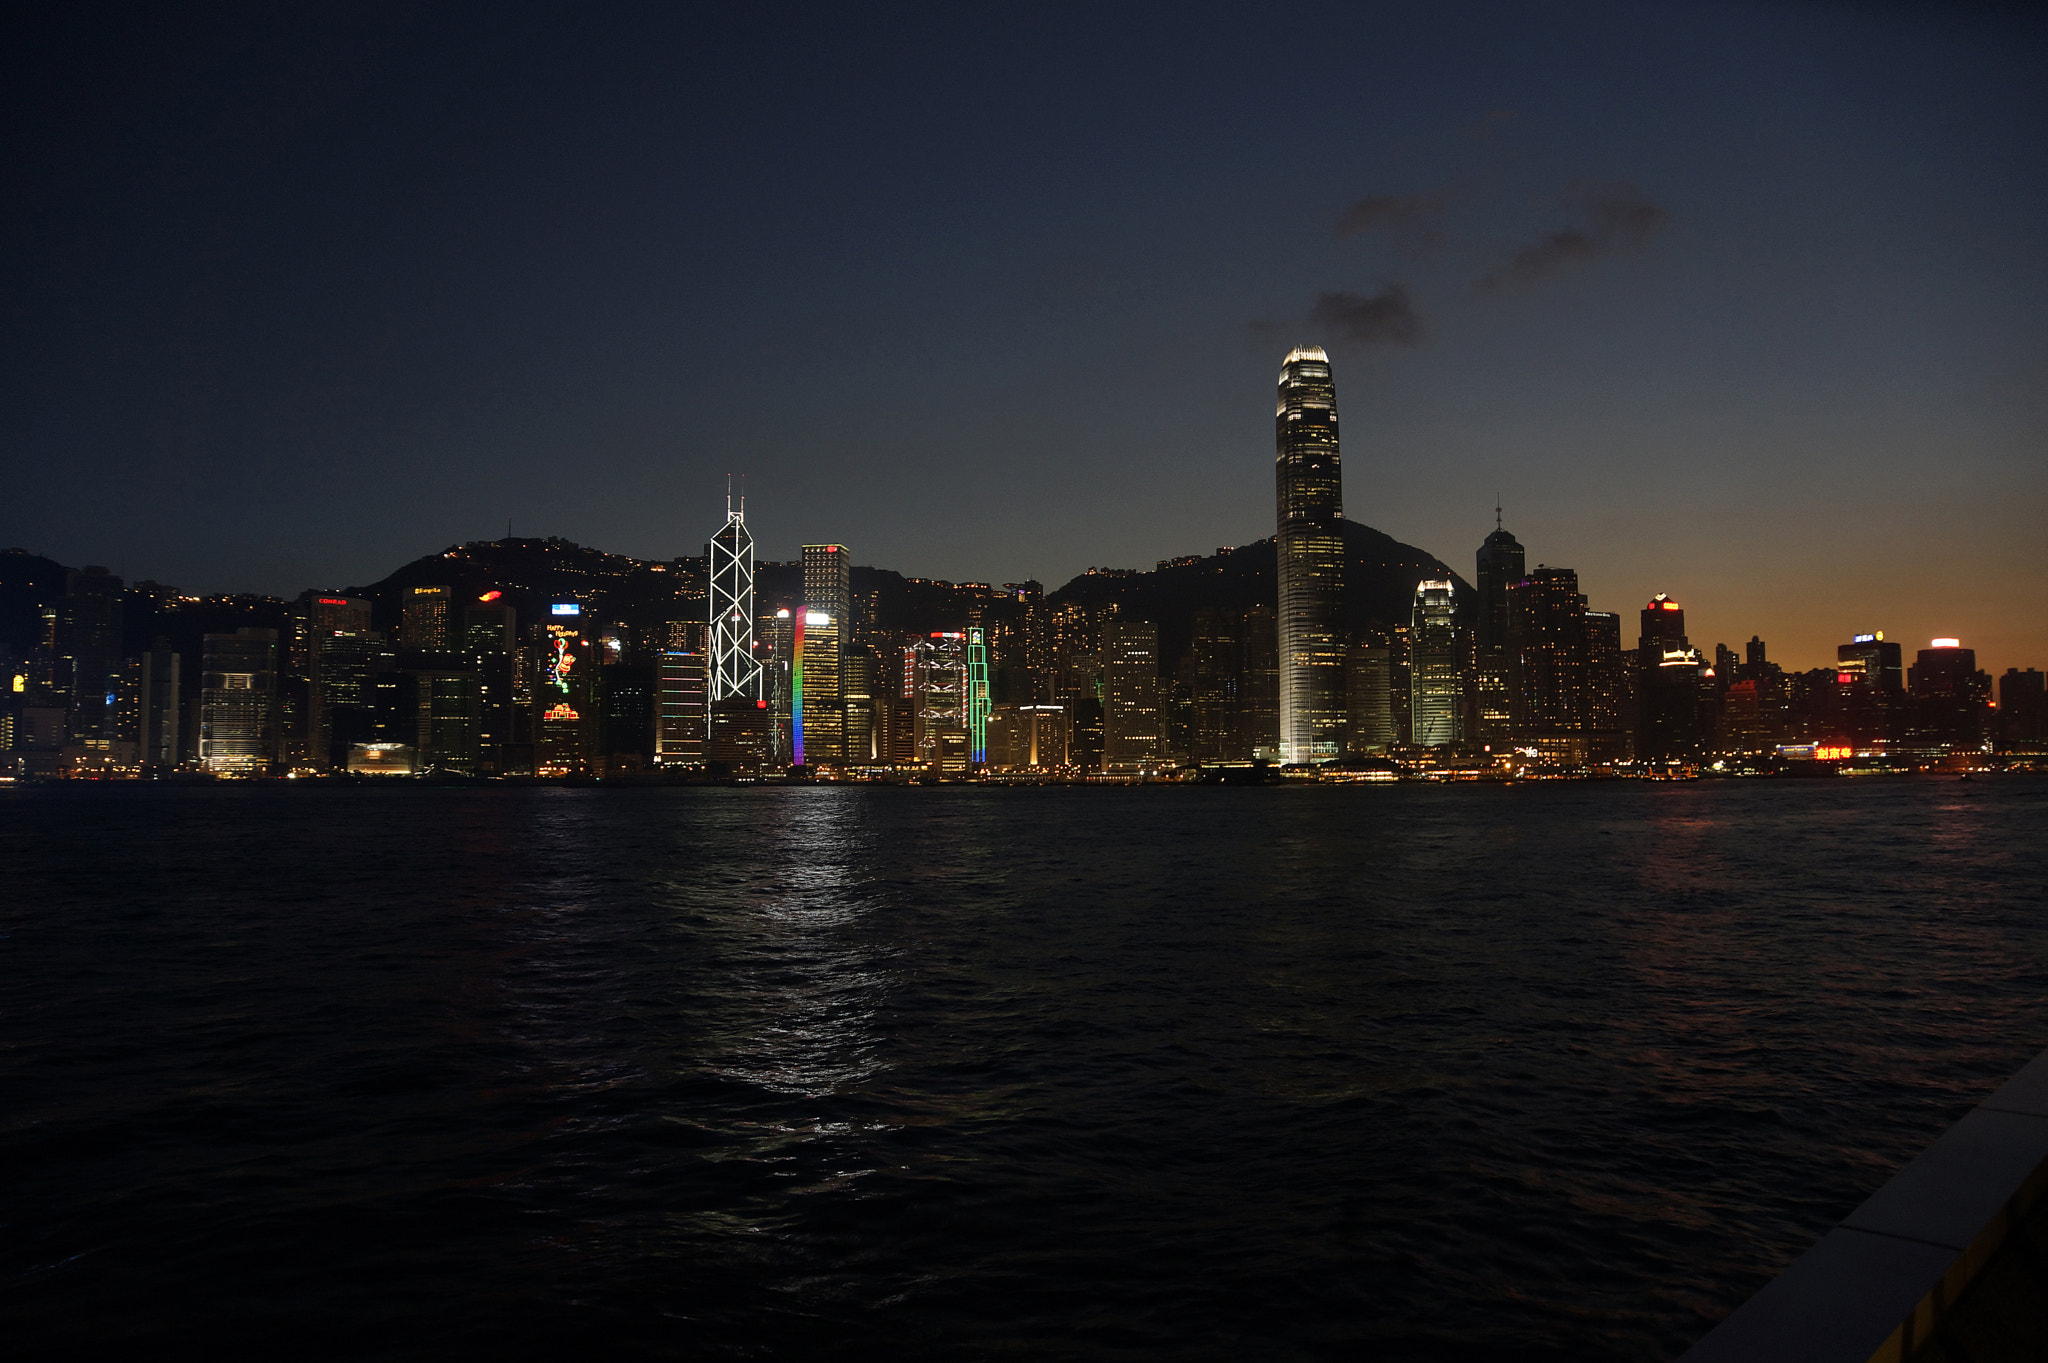 Photograph Hong Kong by André Funke on 500px